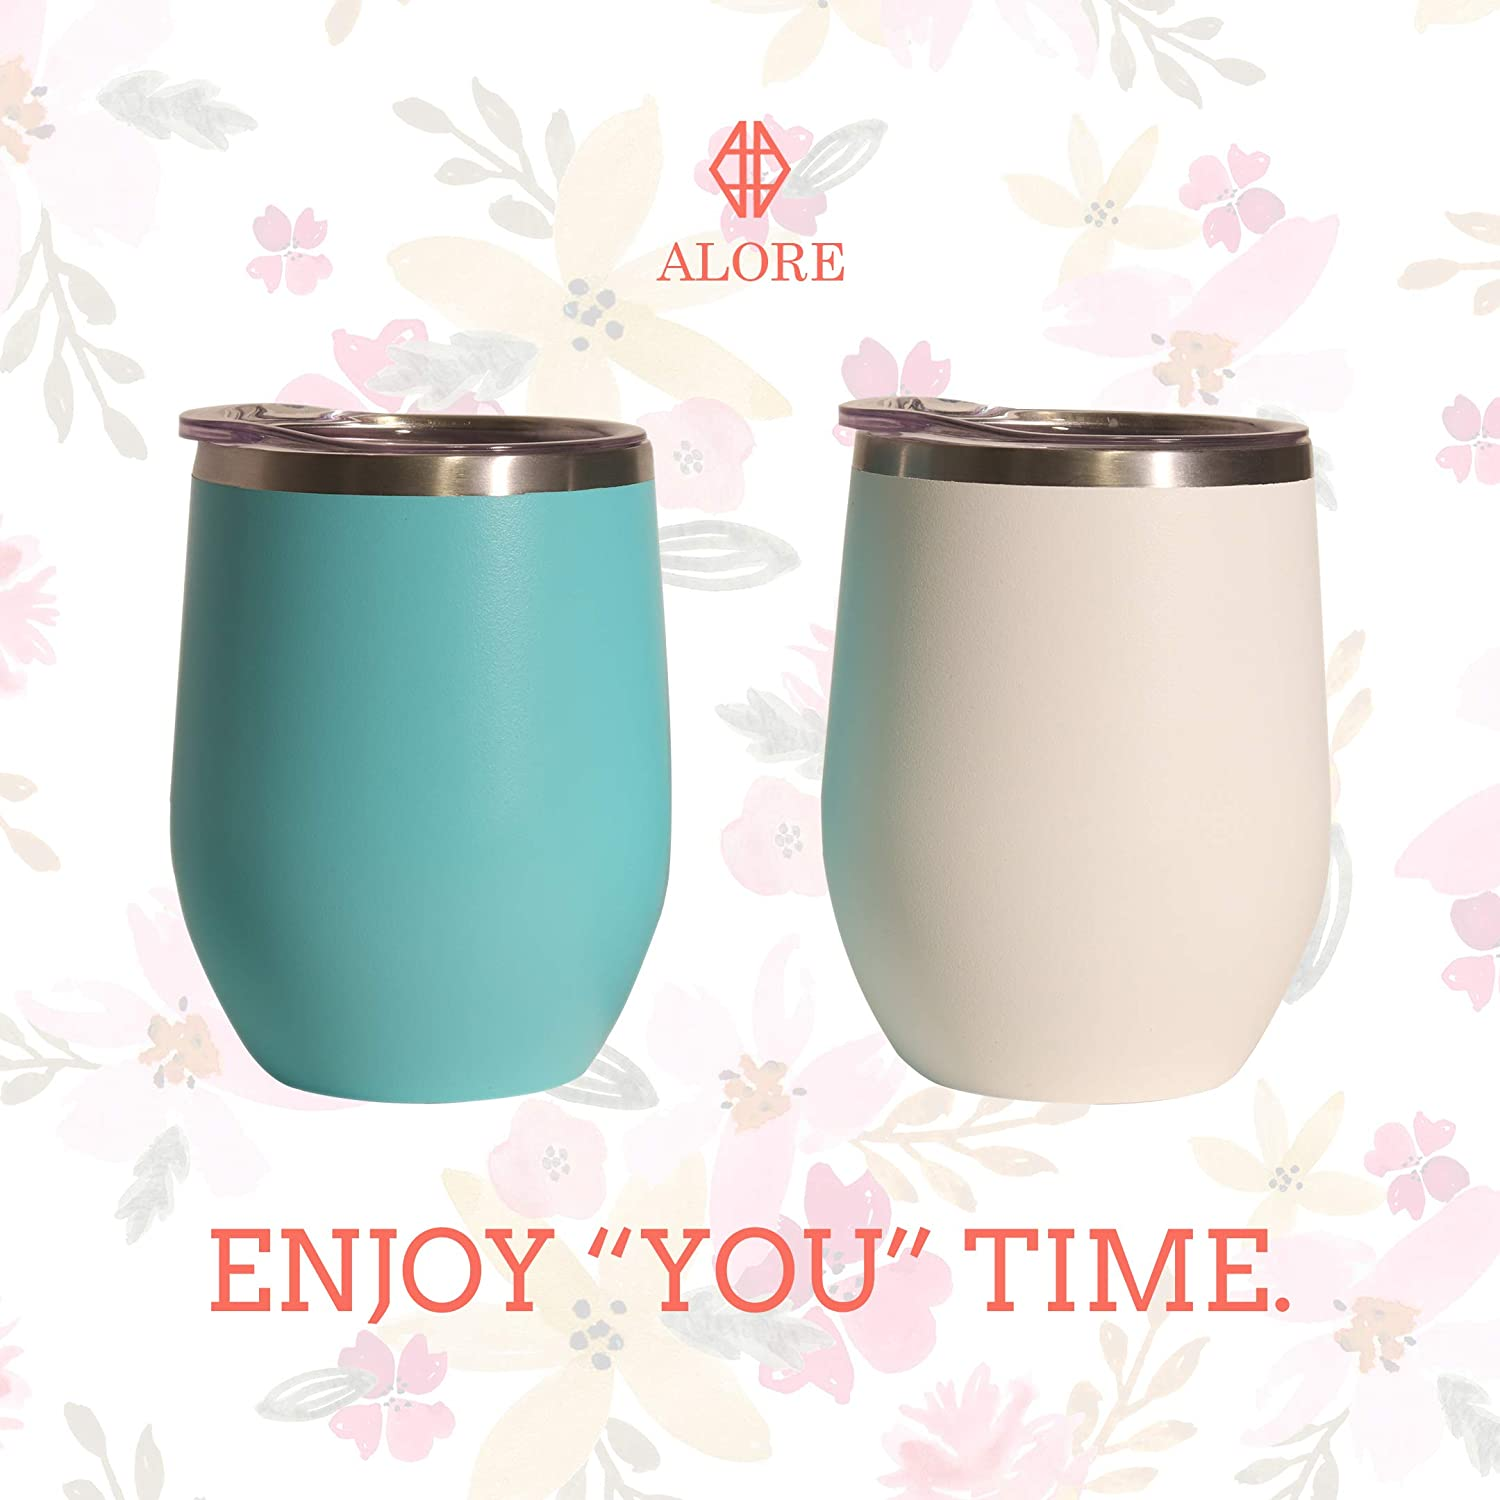 Ice Cream ALORE Wine Tumbler Set of 2 With Lid White and Turquoise 12 oz Stainless Steel Double-Wall Vacuum Insulated Travel Tumbler for Coffee Beer Cocktails Holiday Gift for Her//Him